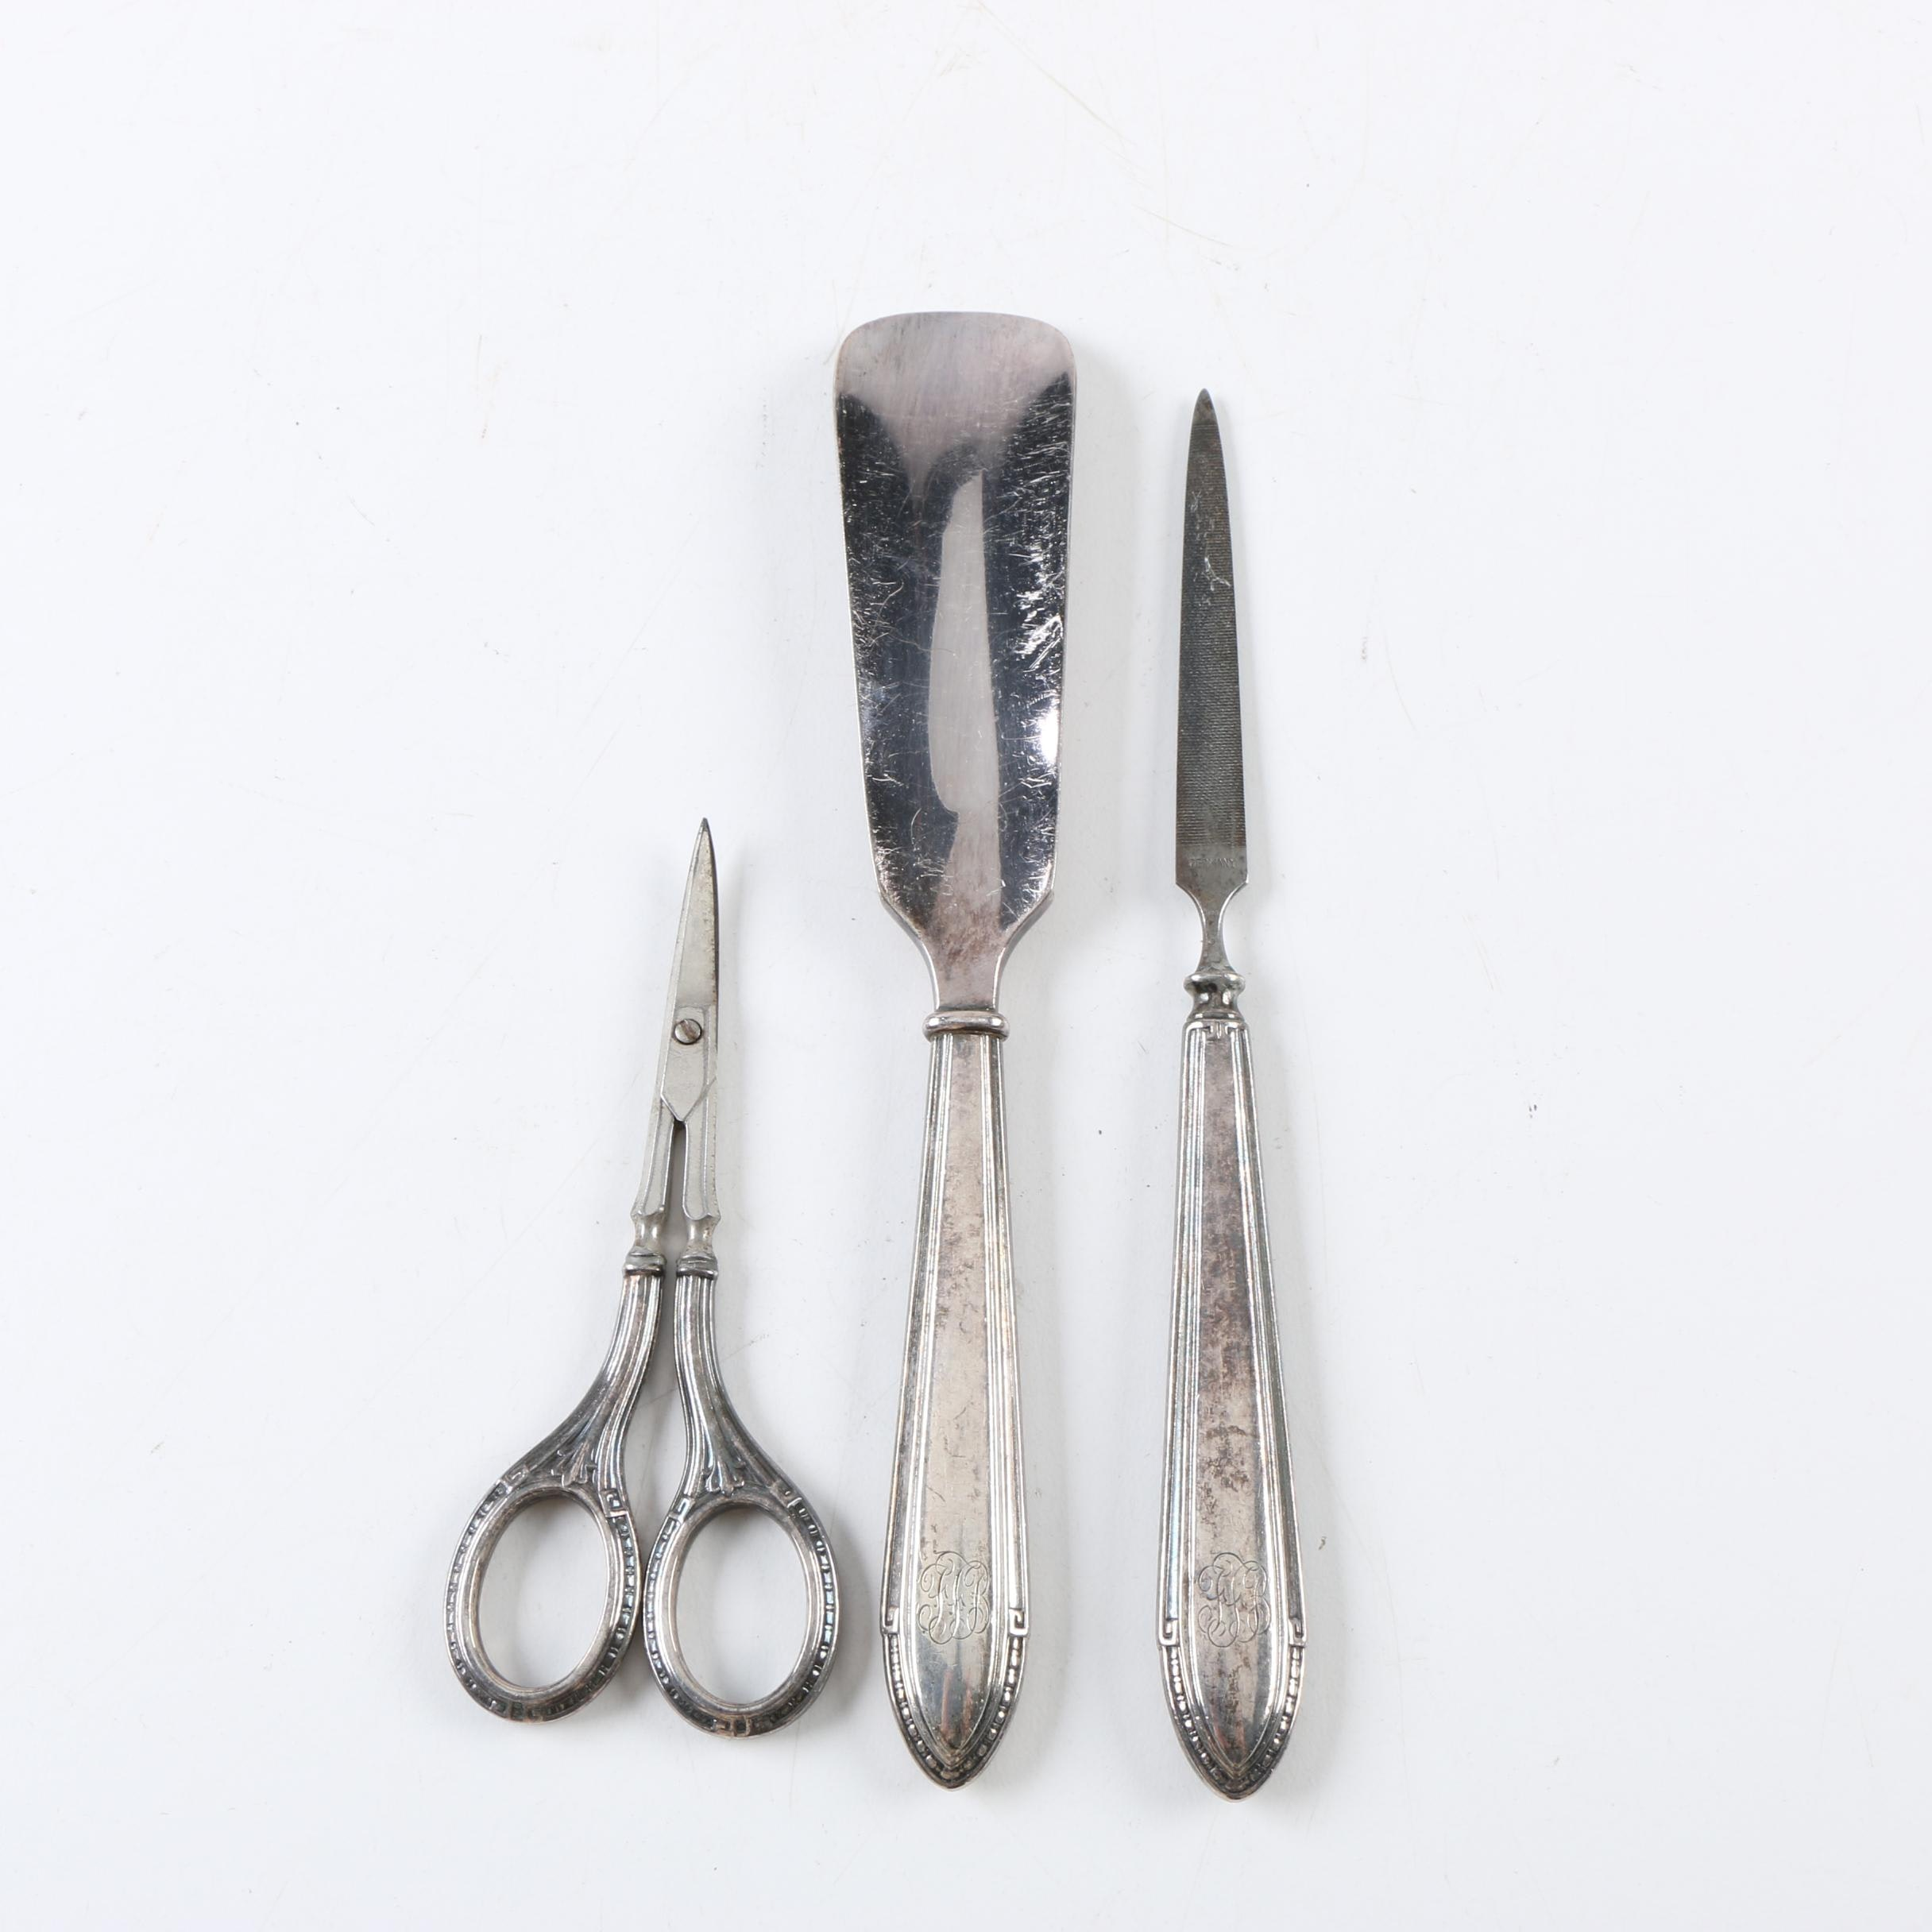 Silver Plate Shoe Horn and Other Vanity Tools